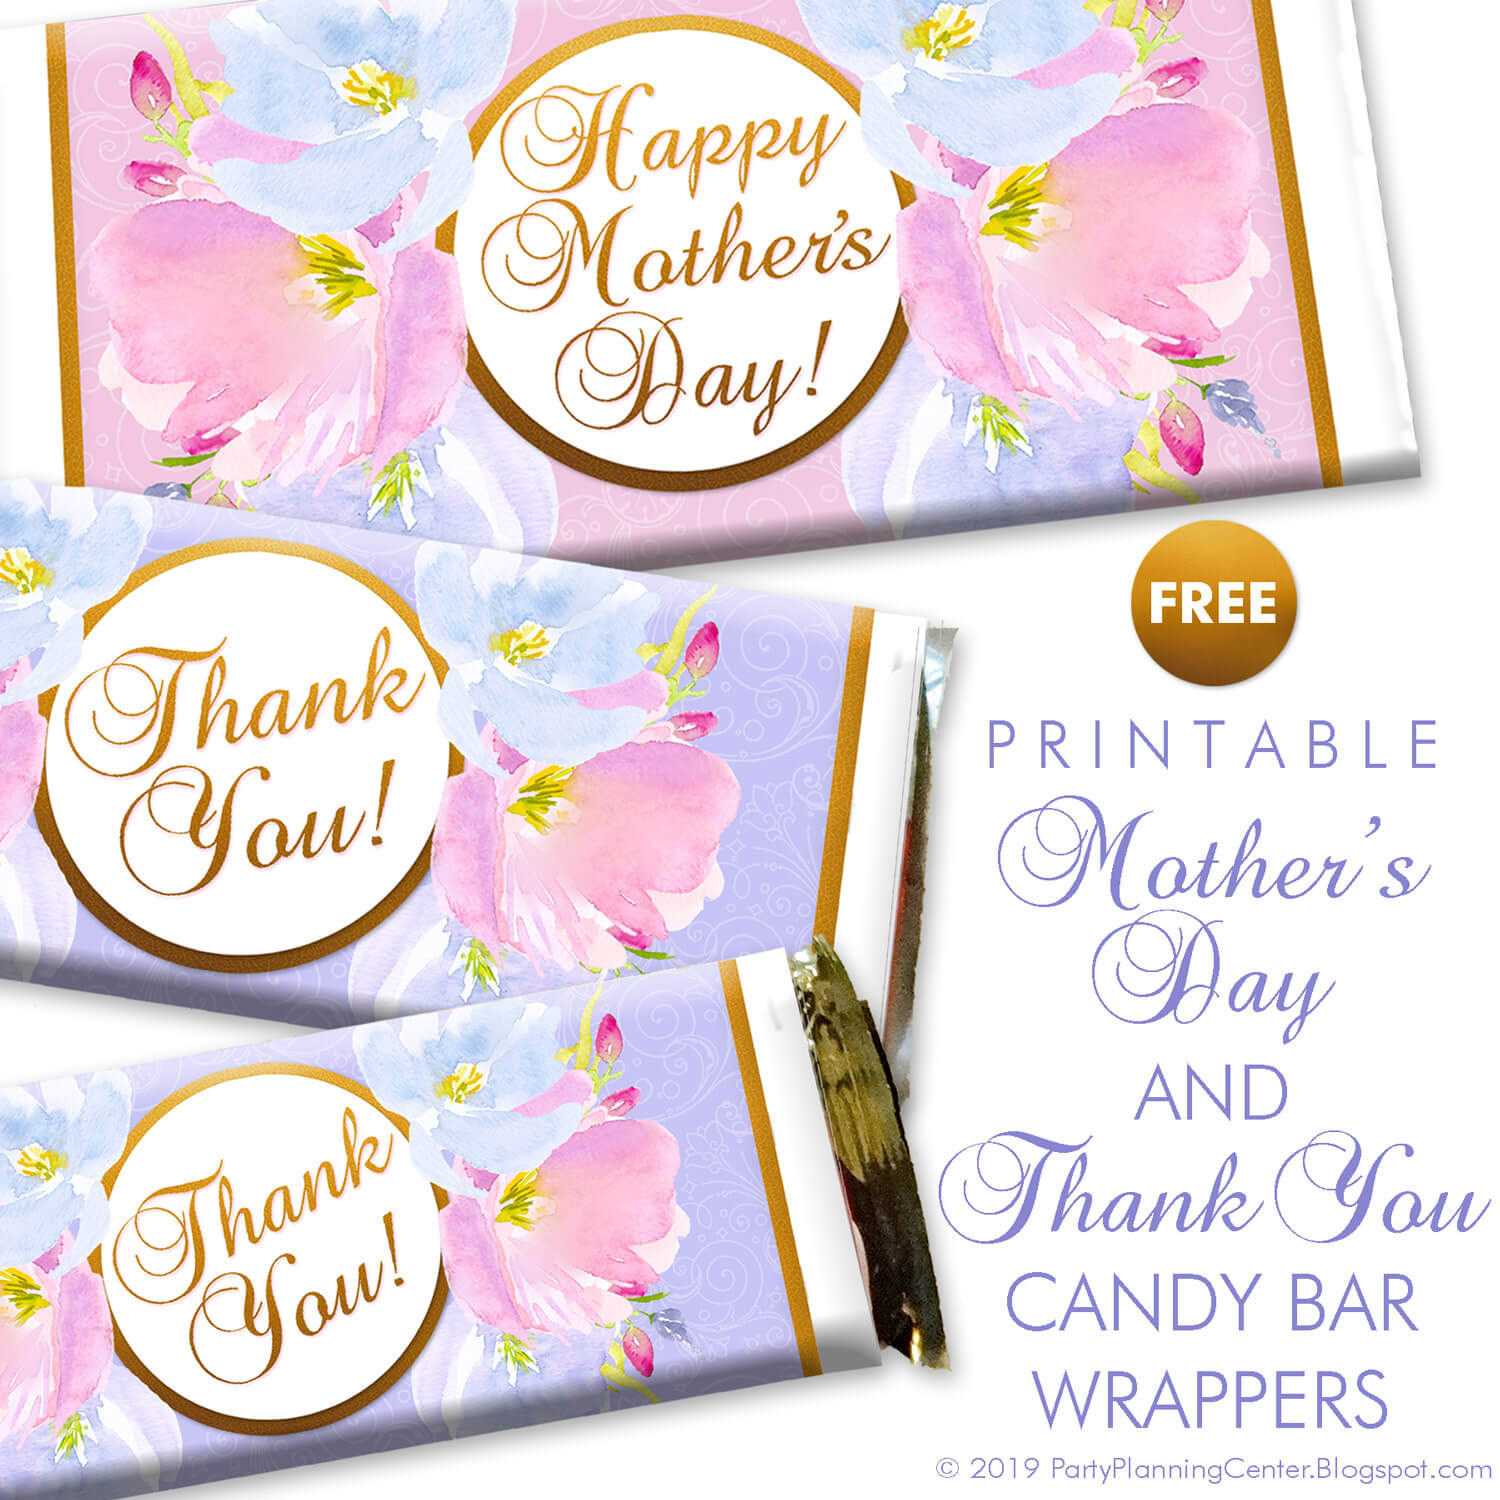 Free Printable Diy Candy Bar Wrappers For Free Blank Candy Bar Wrapper Template